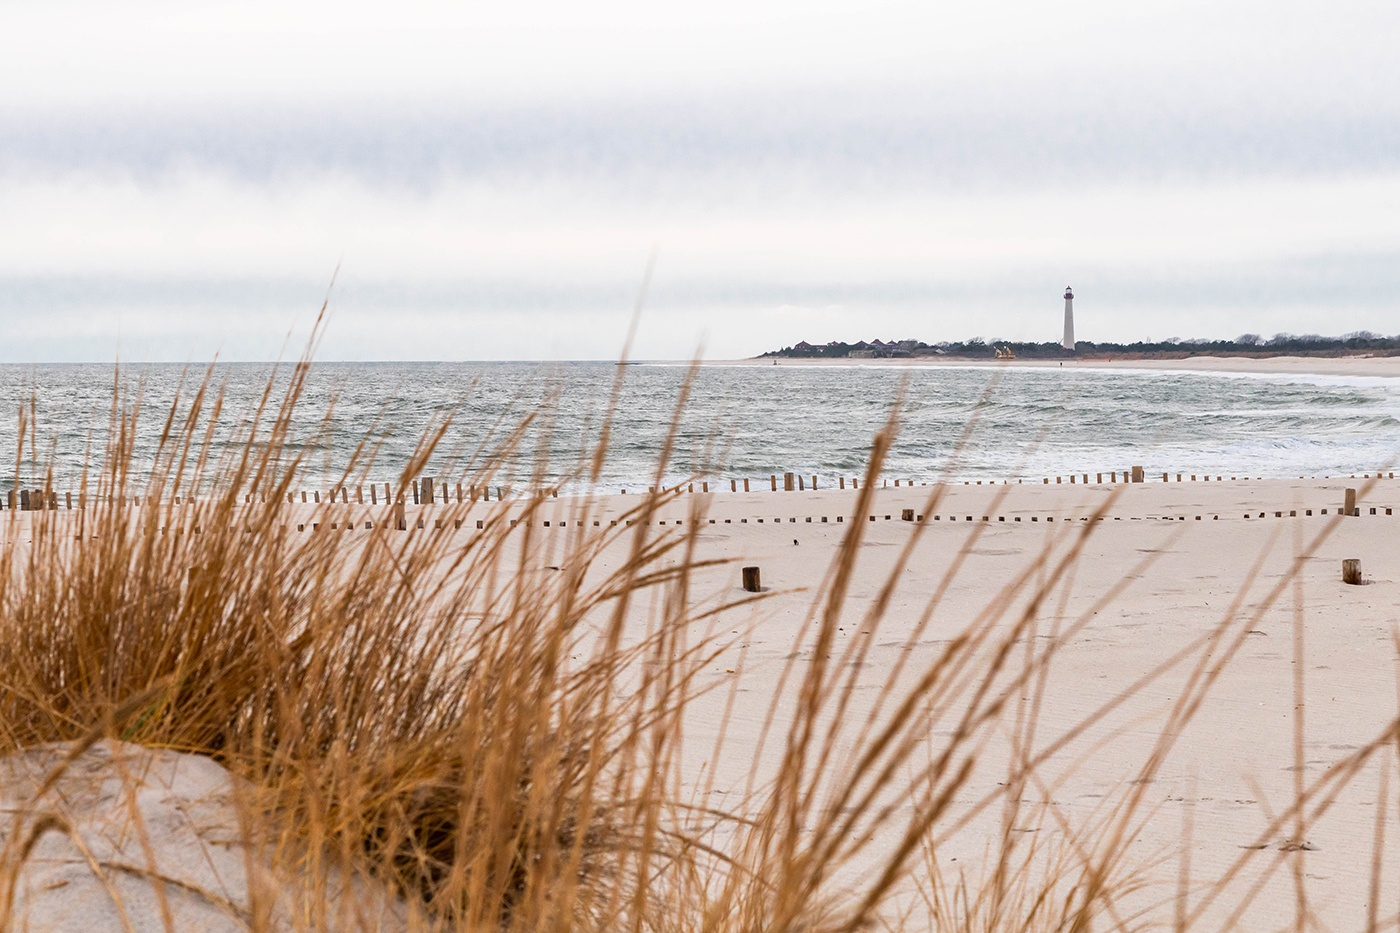 A viewing through the beach dunes with the Cape May Lighthouse in the distance